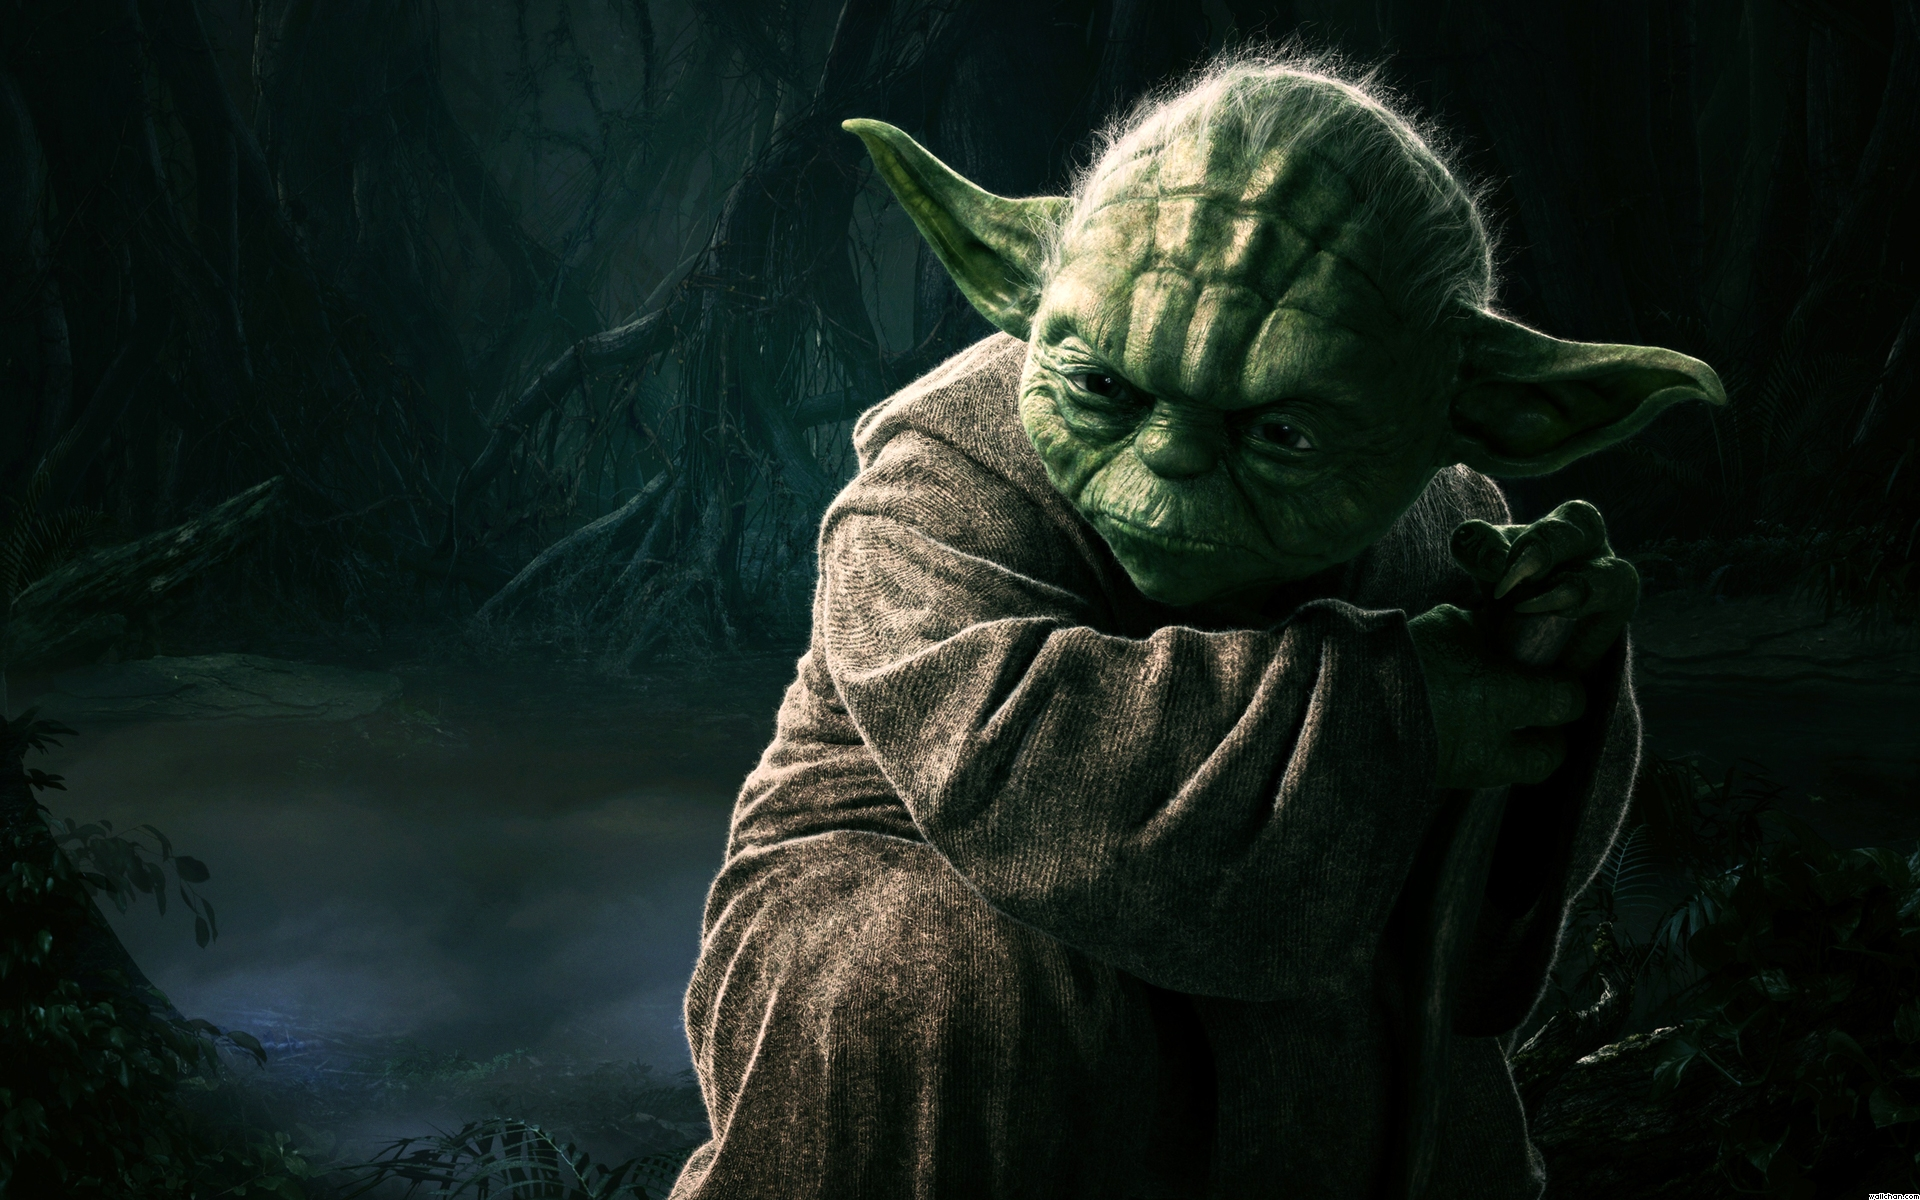 Yoda Wallpaper   Star Wars Wallpaper 30766197 fanclubs 1920x1200